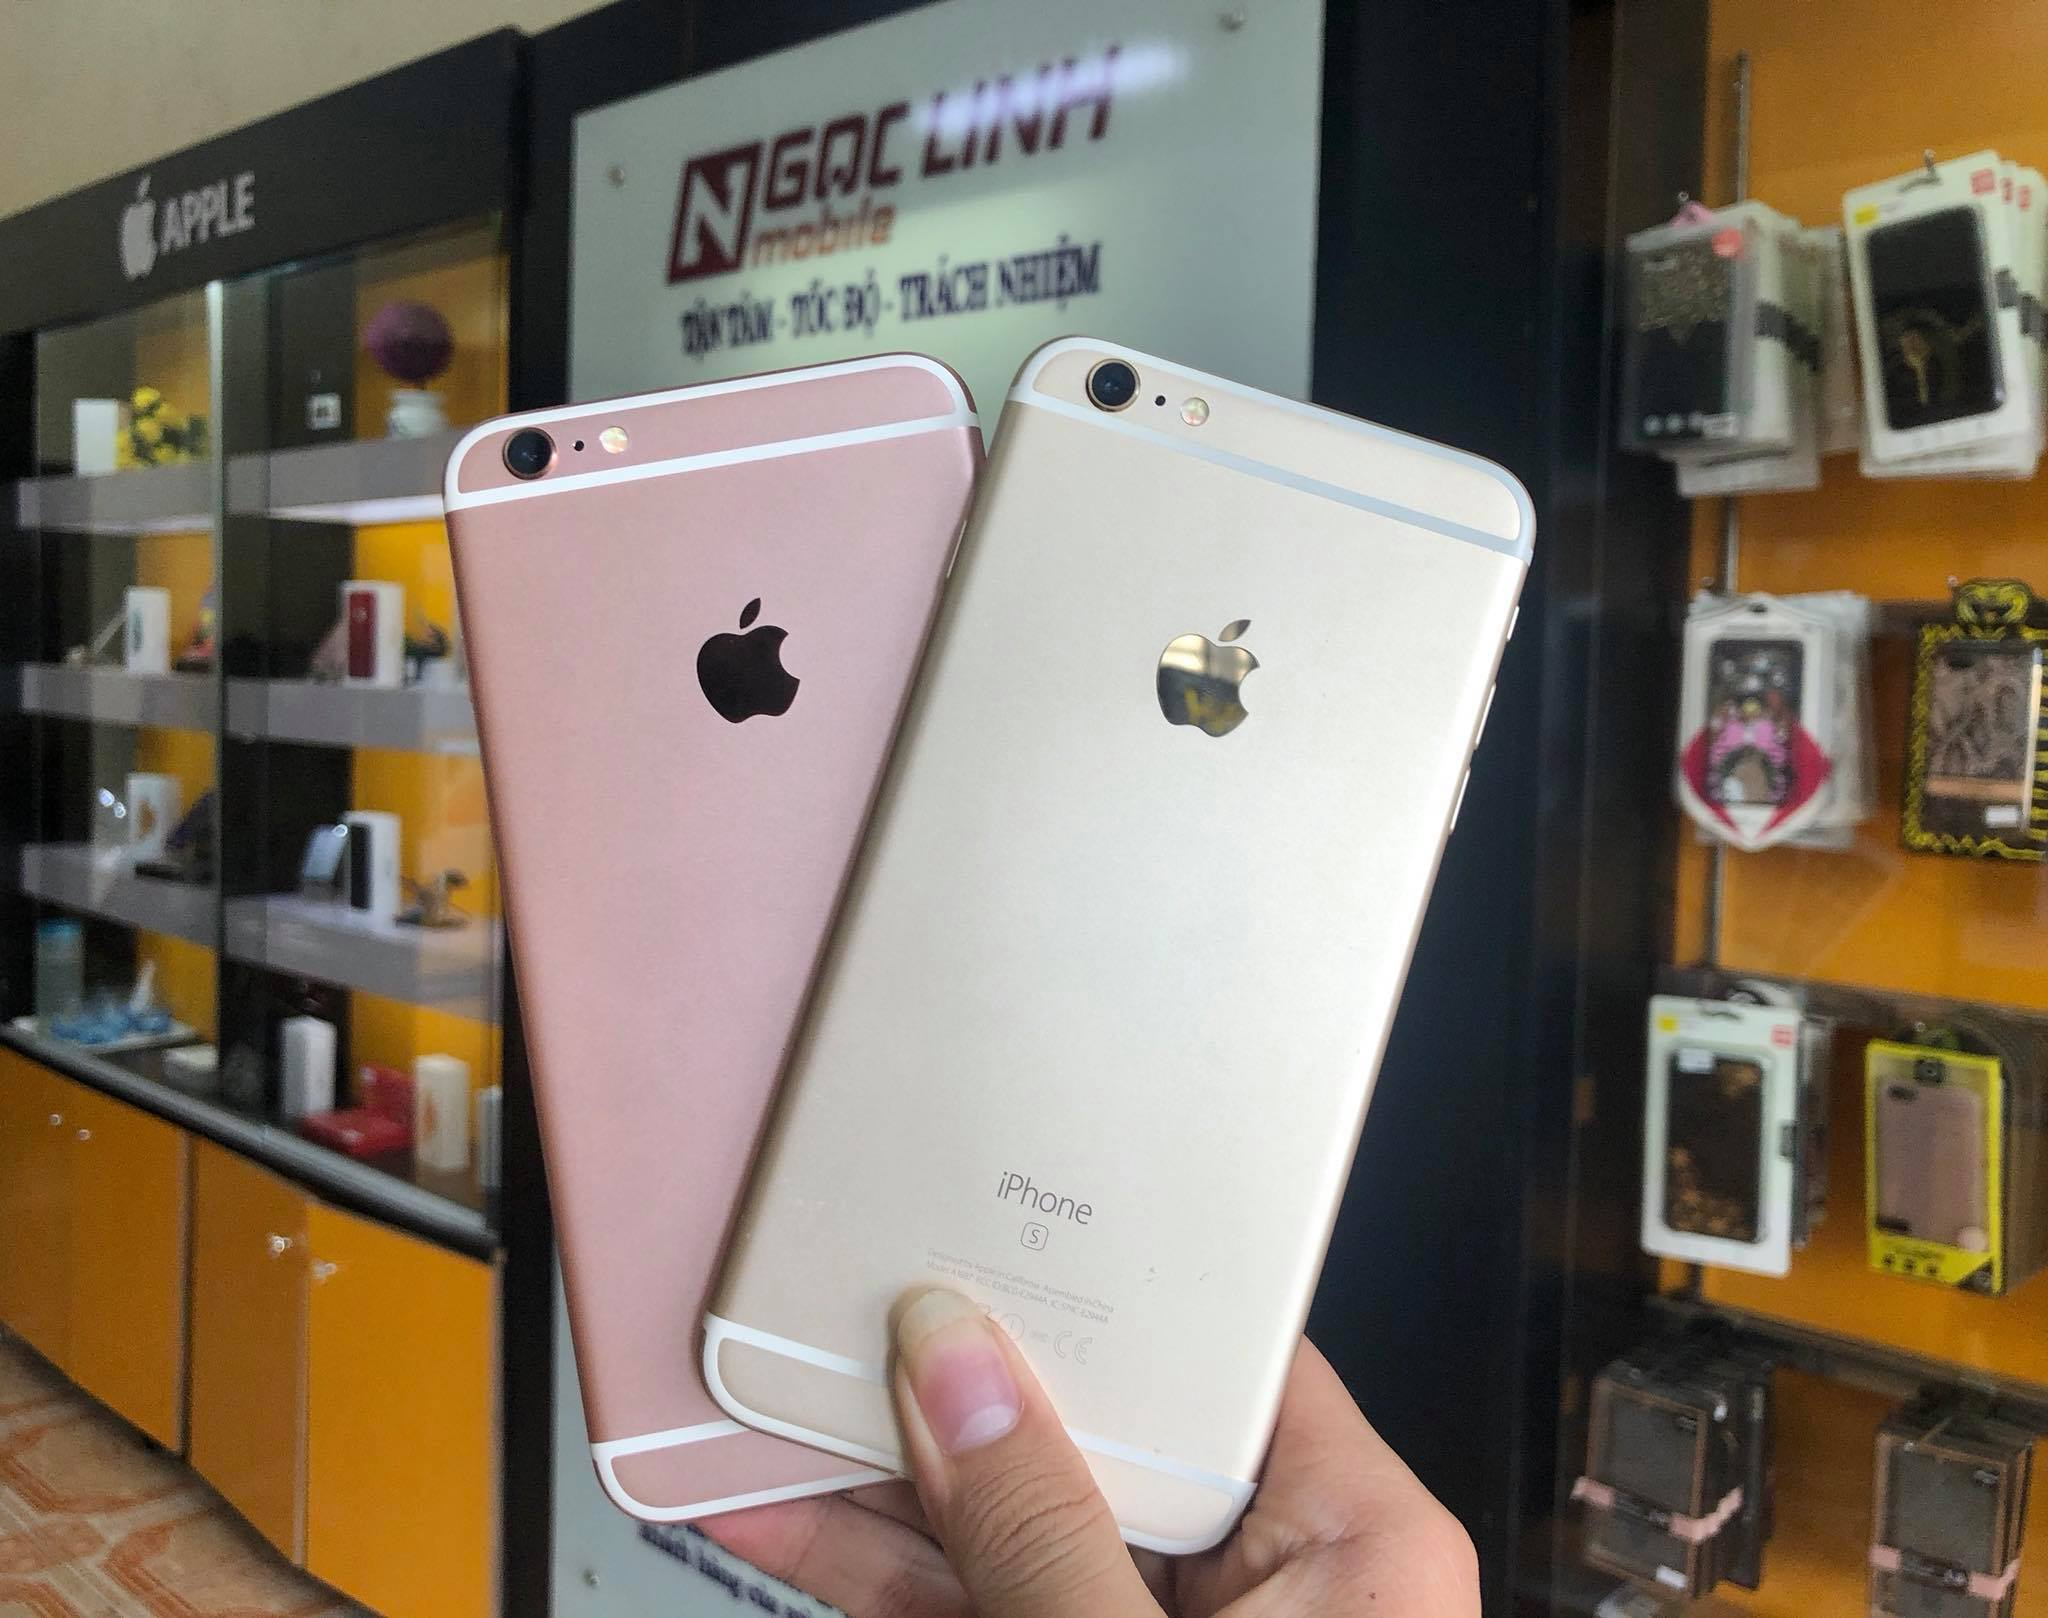 iPhone 6s Plus 16GB, iphone hàng lướt, iPhone 6s Plus 64GB, iPhone 6s Plus 32GB  - iPhone 6s Plus 32GB